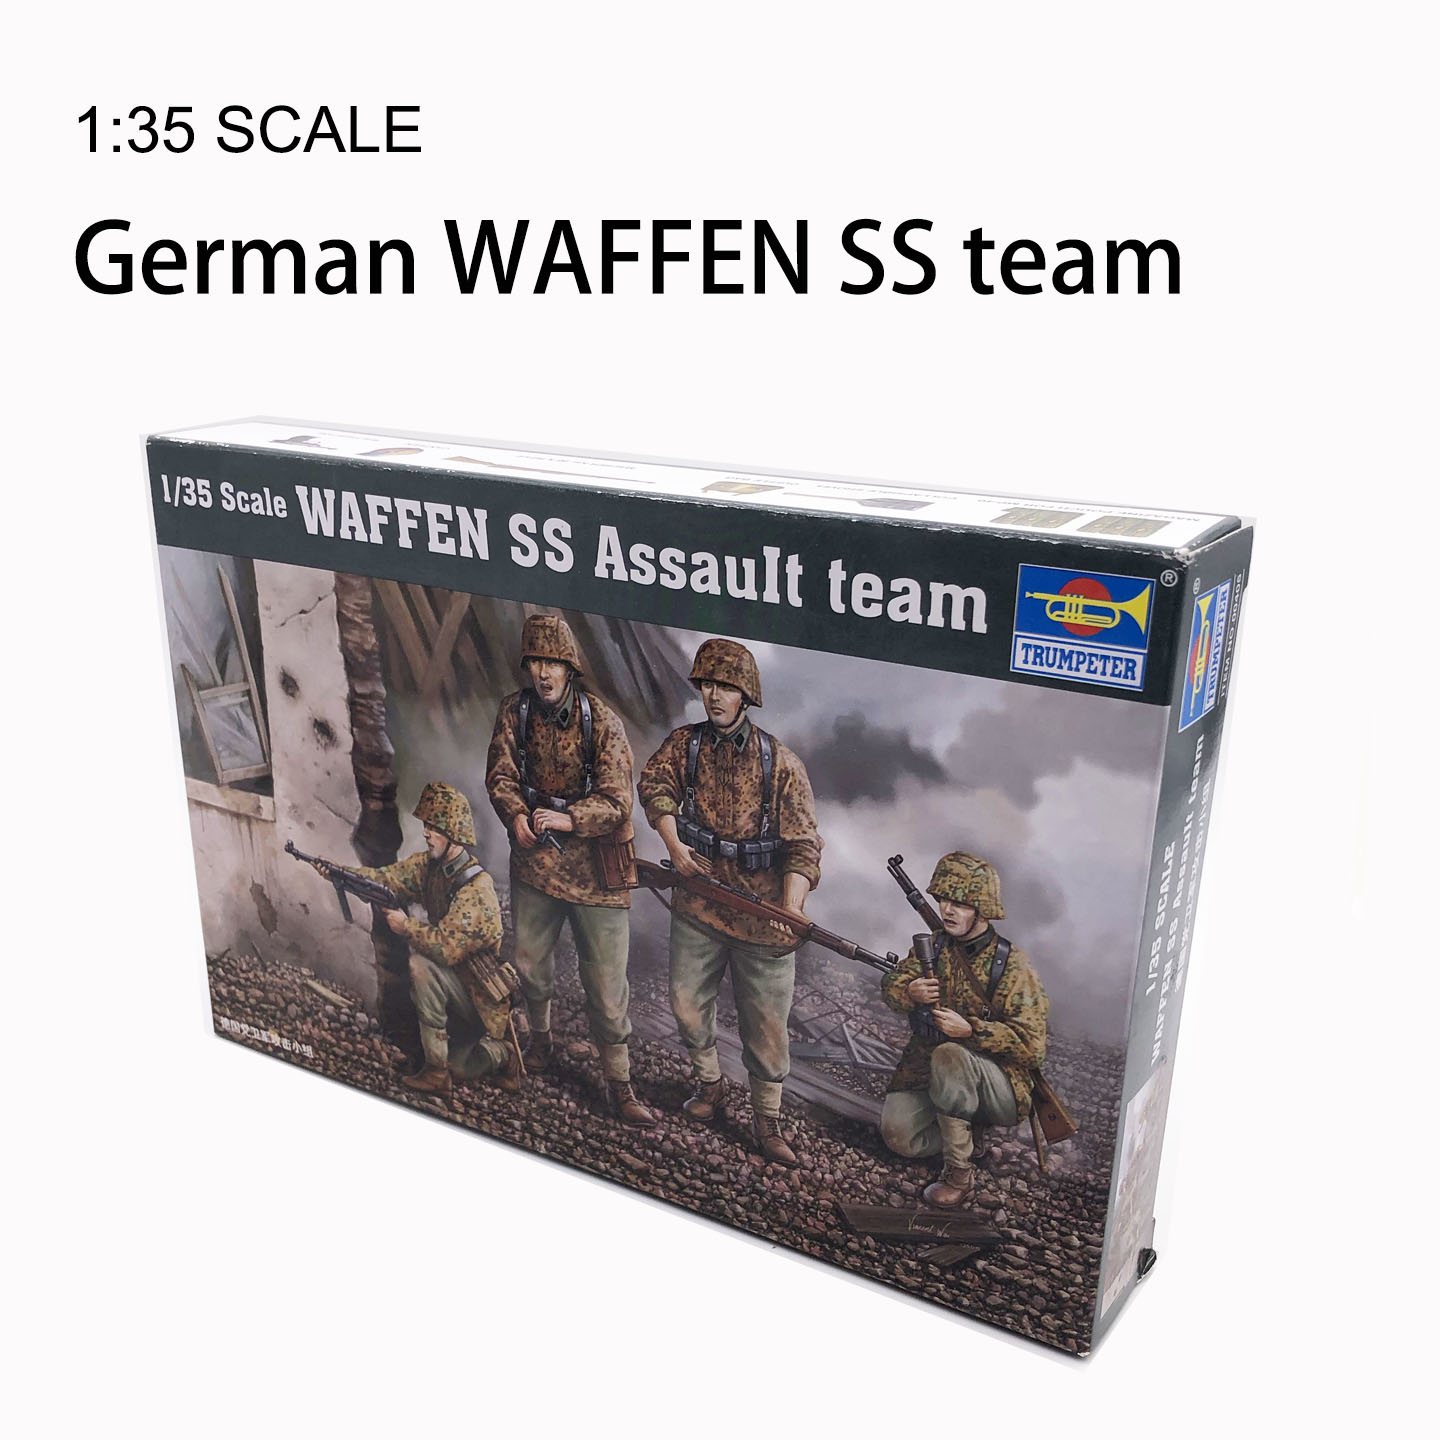 1:35 WAFFEN SS Assault Team 1/35 German Attacking Group Soldiers Military Model Scene Puppet Element Trumpeter 00405